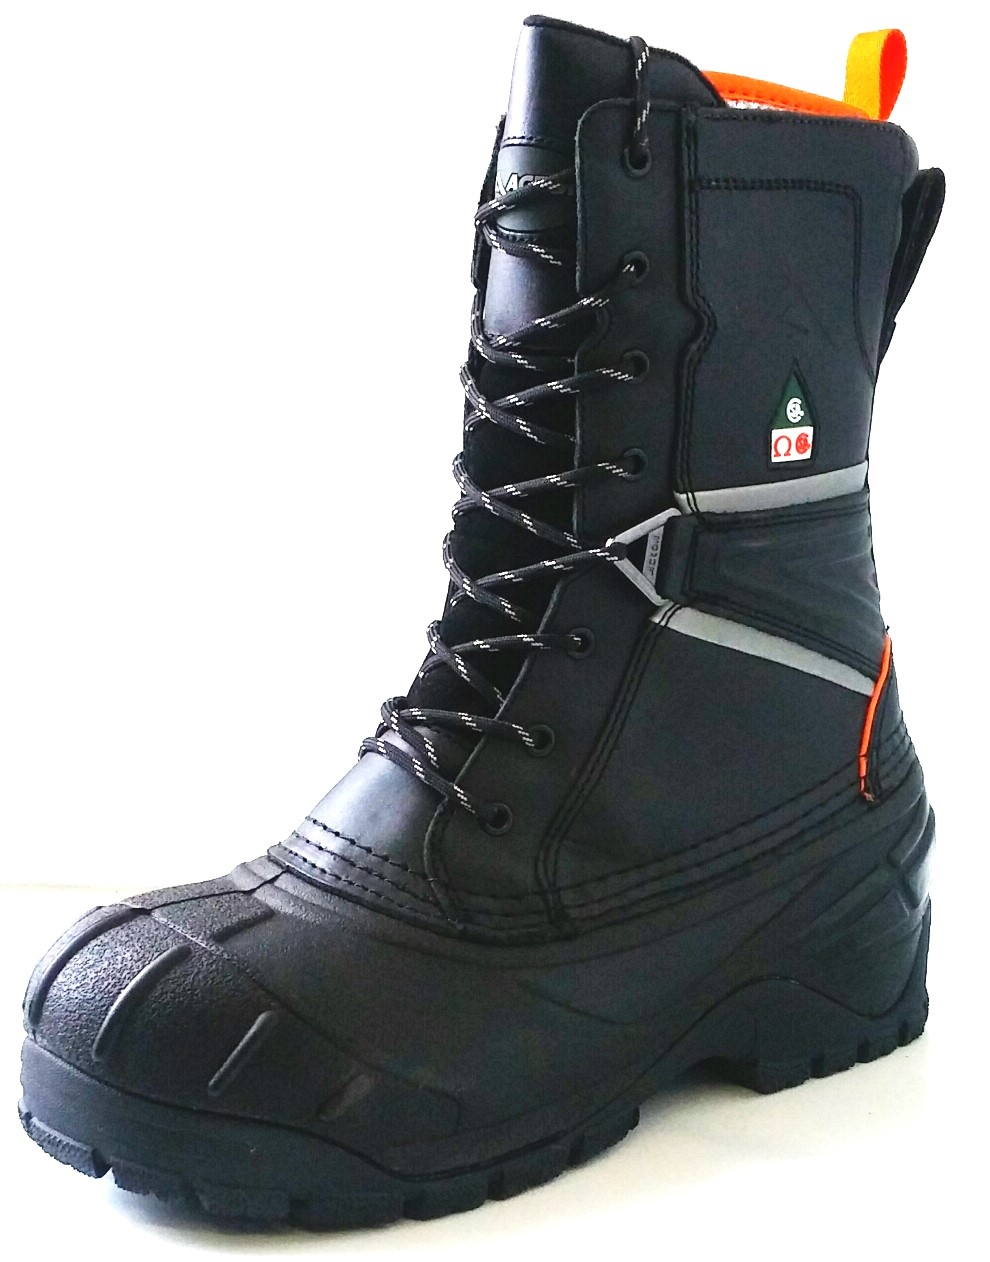 Acton Fighter boot A5603B-11